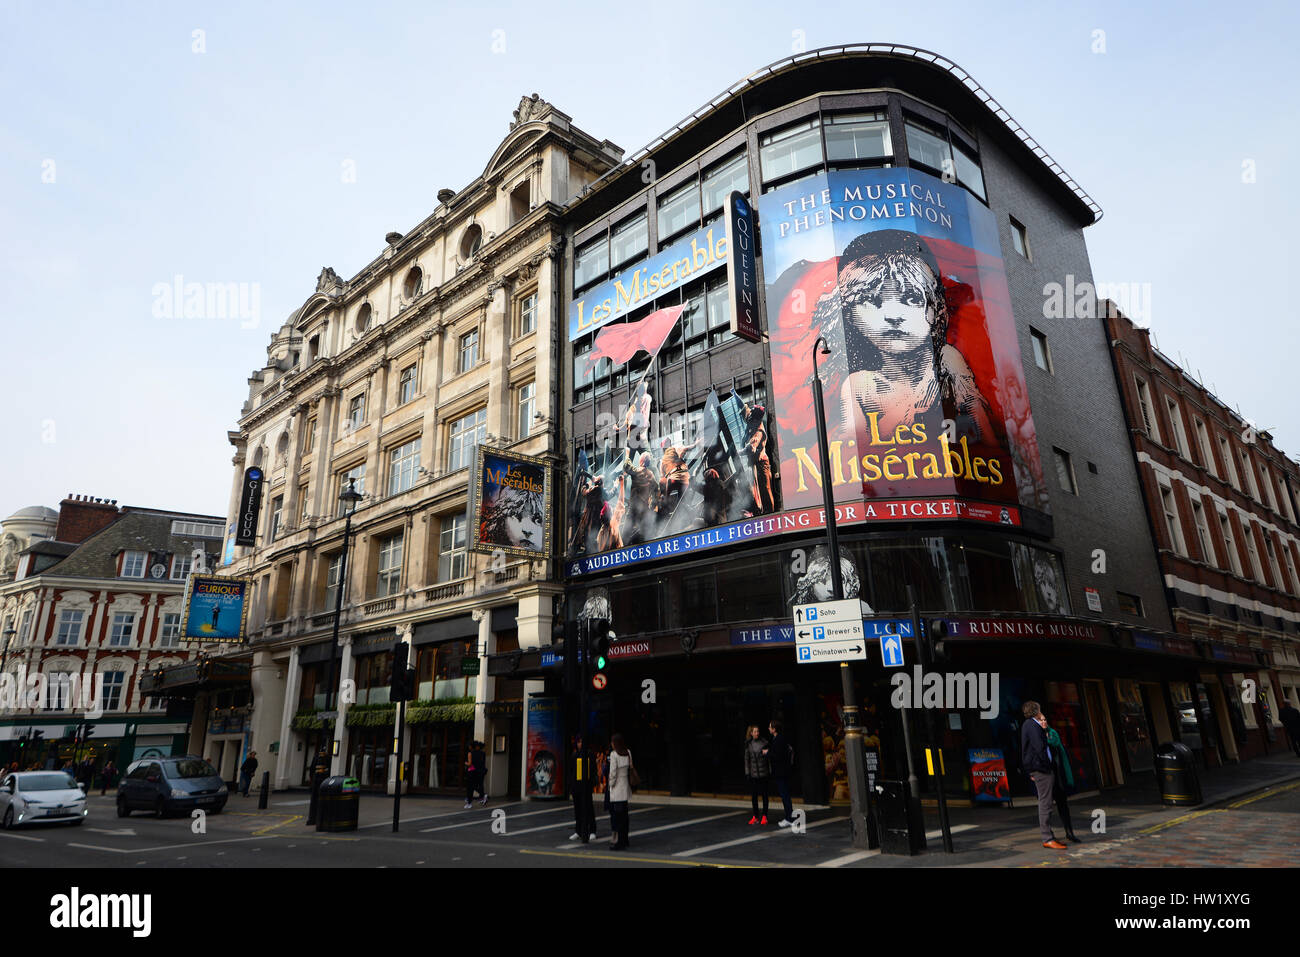 Les Miserables playing at the Queen's Theatre in London. Space for copy - Stock Image